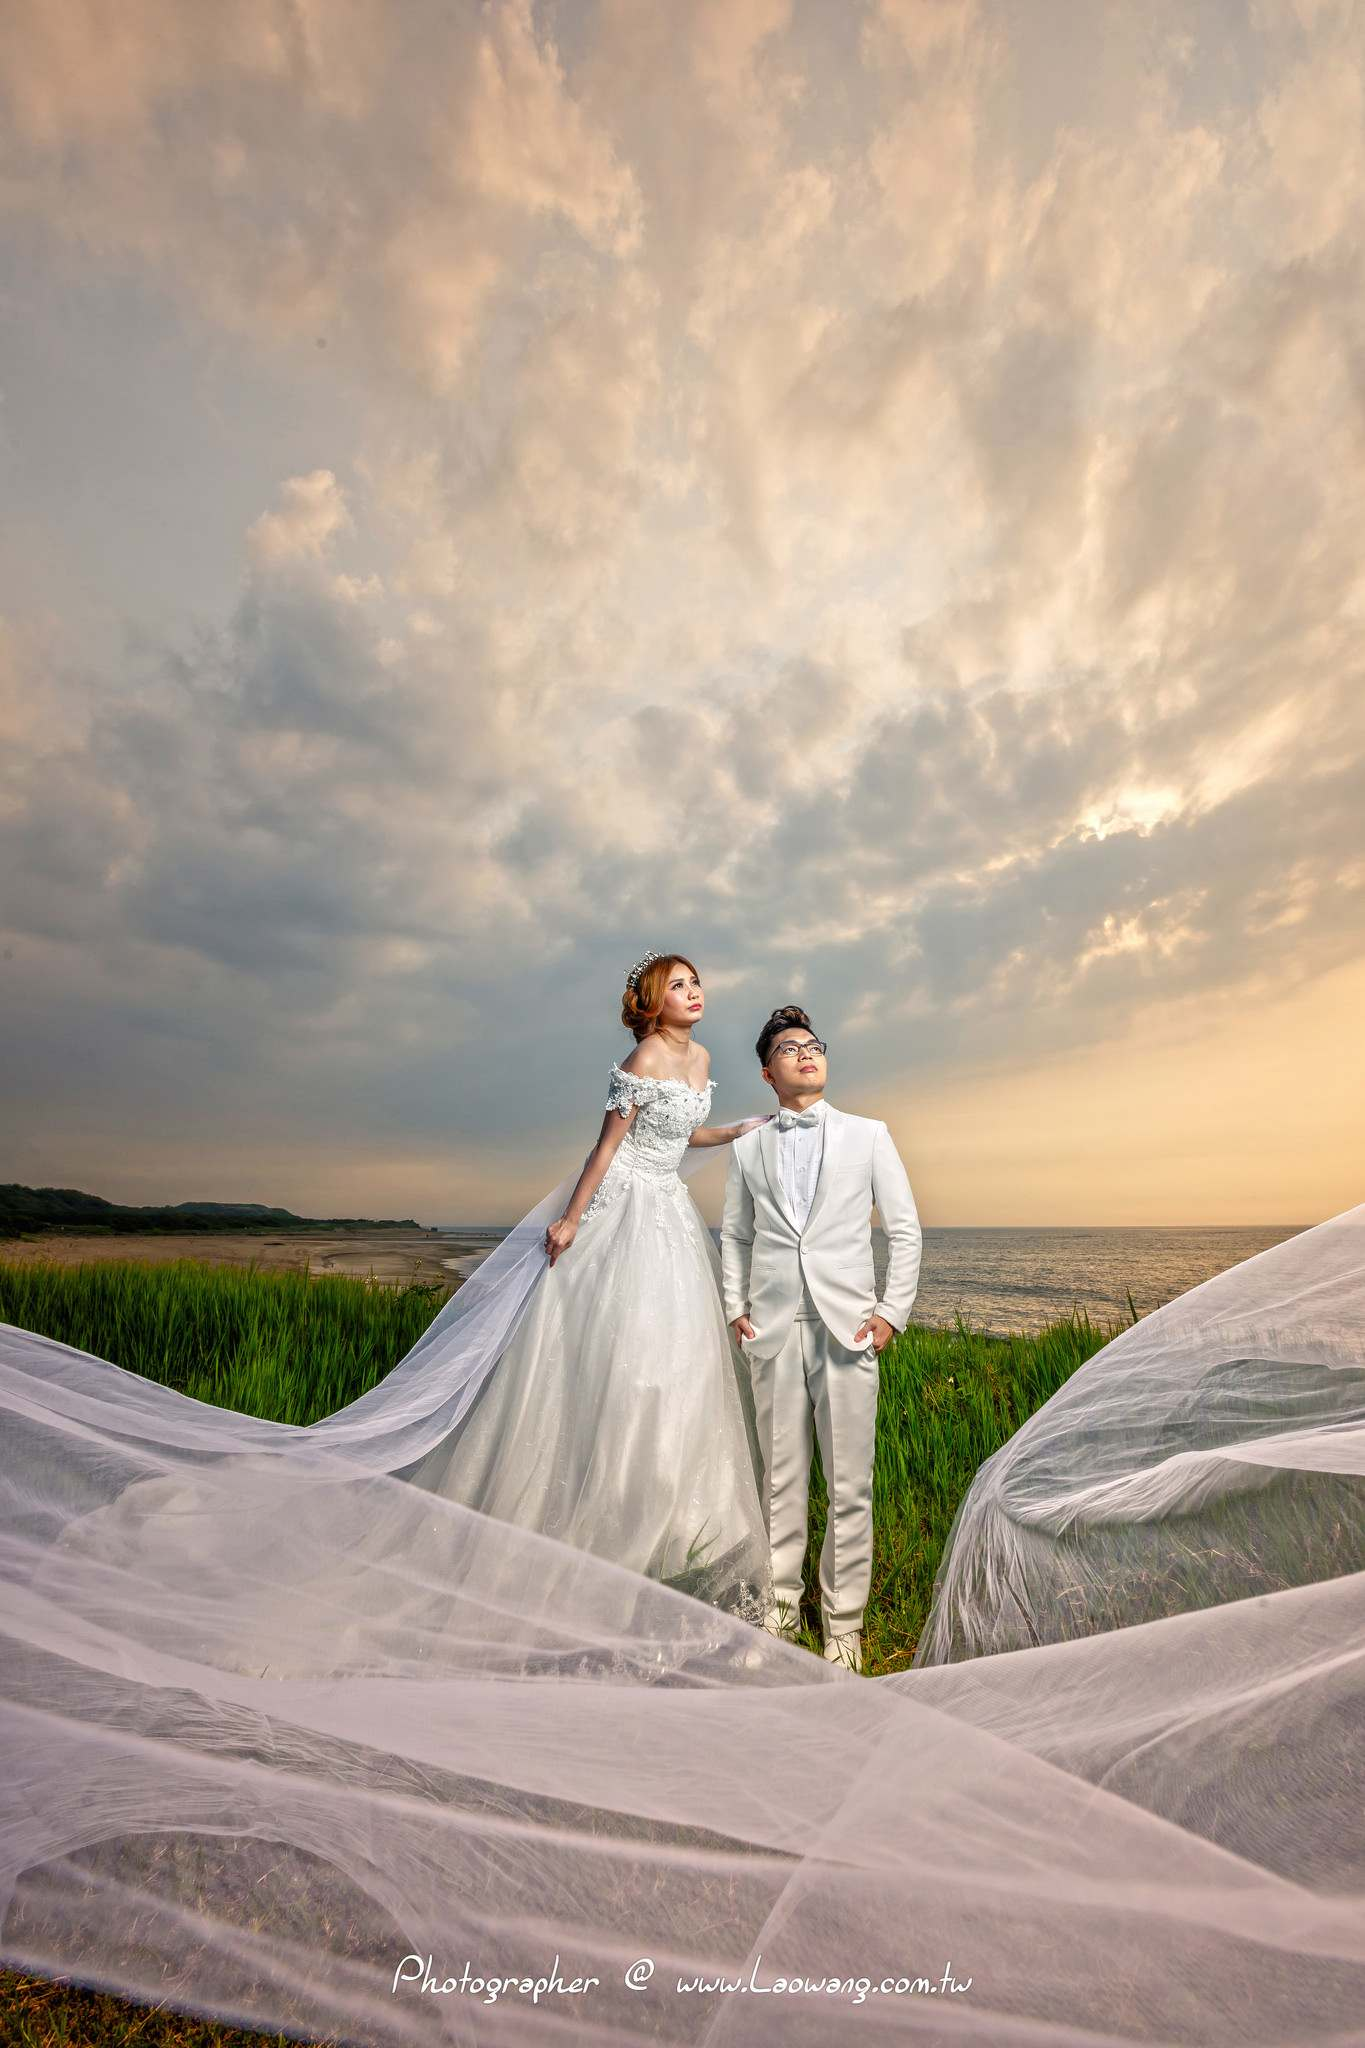 wedding photography17 The Best Wedding Photography Ideas by Lao Wang